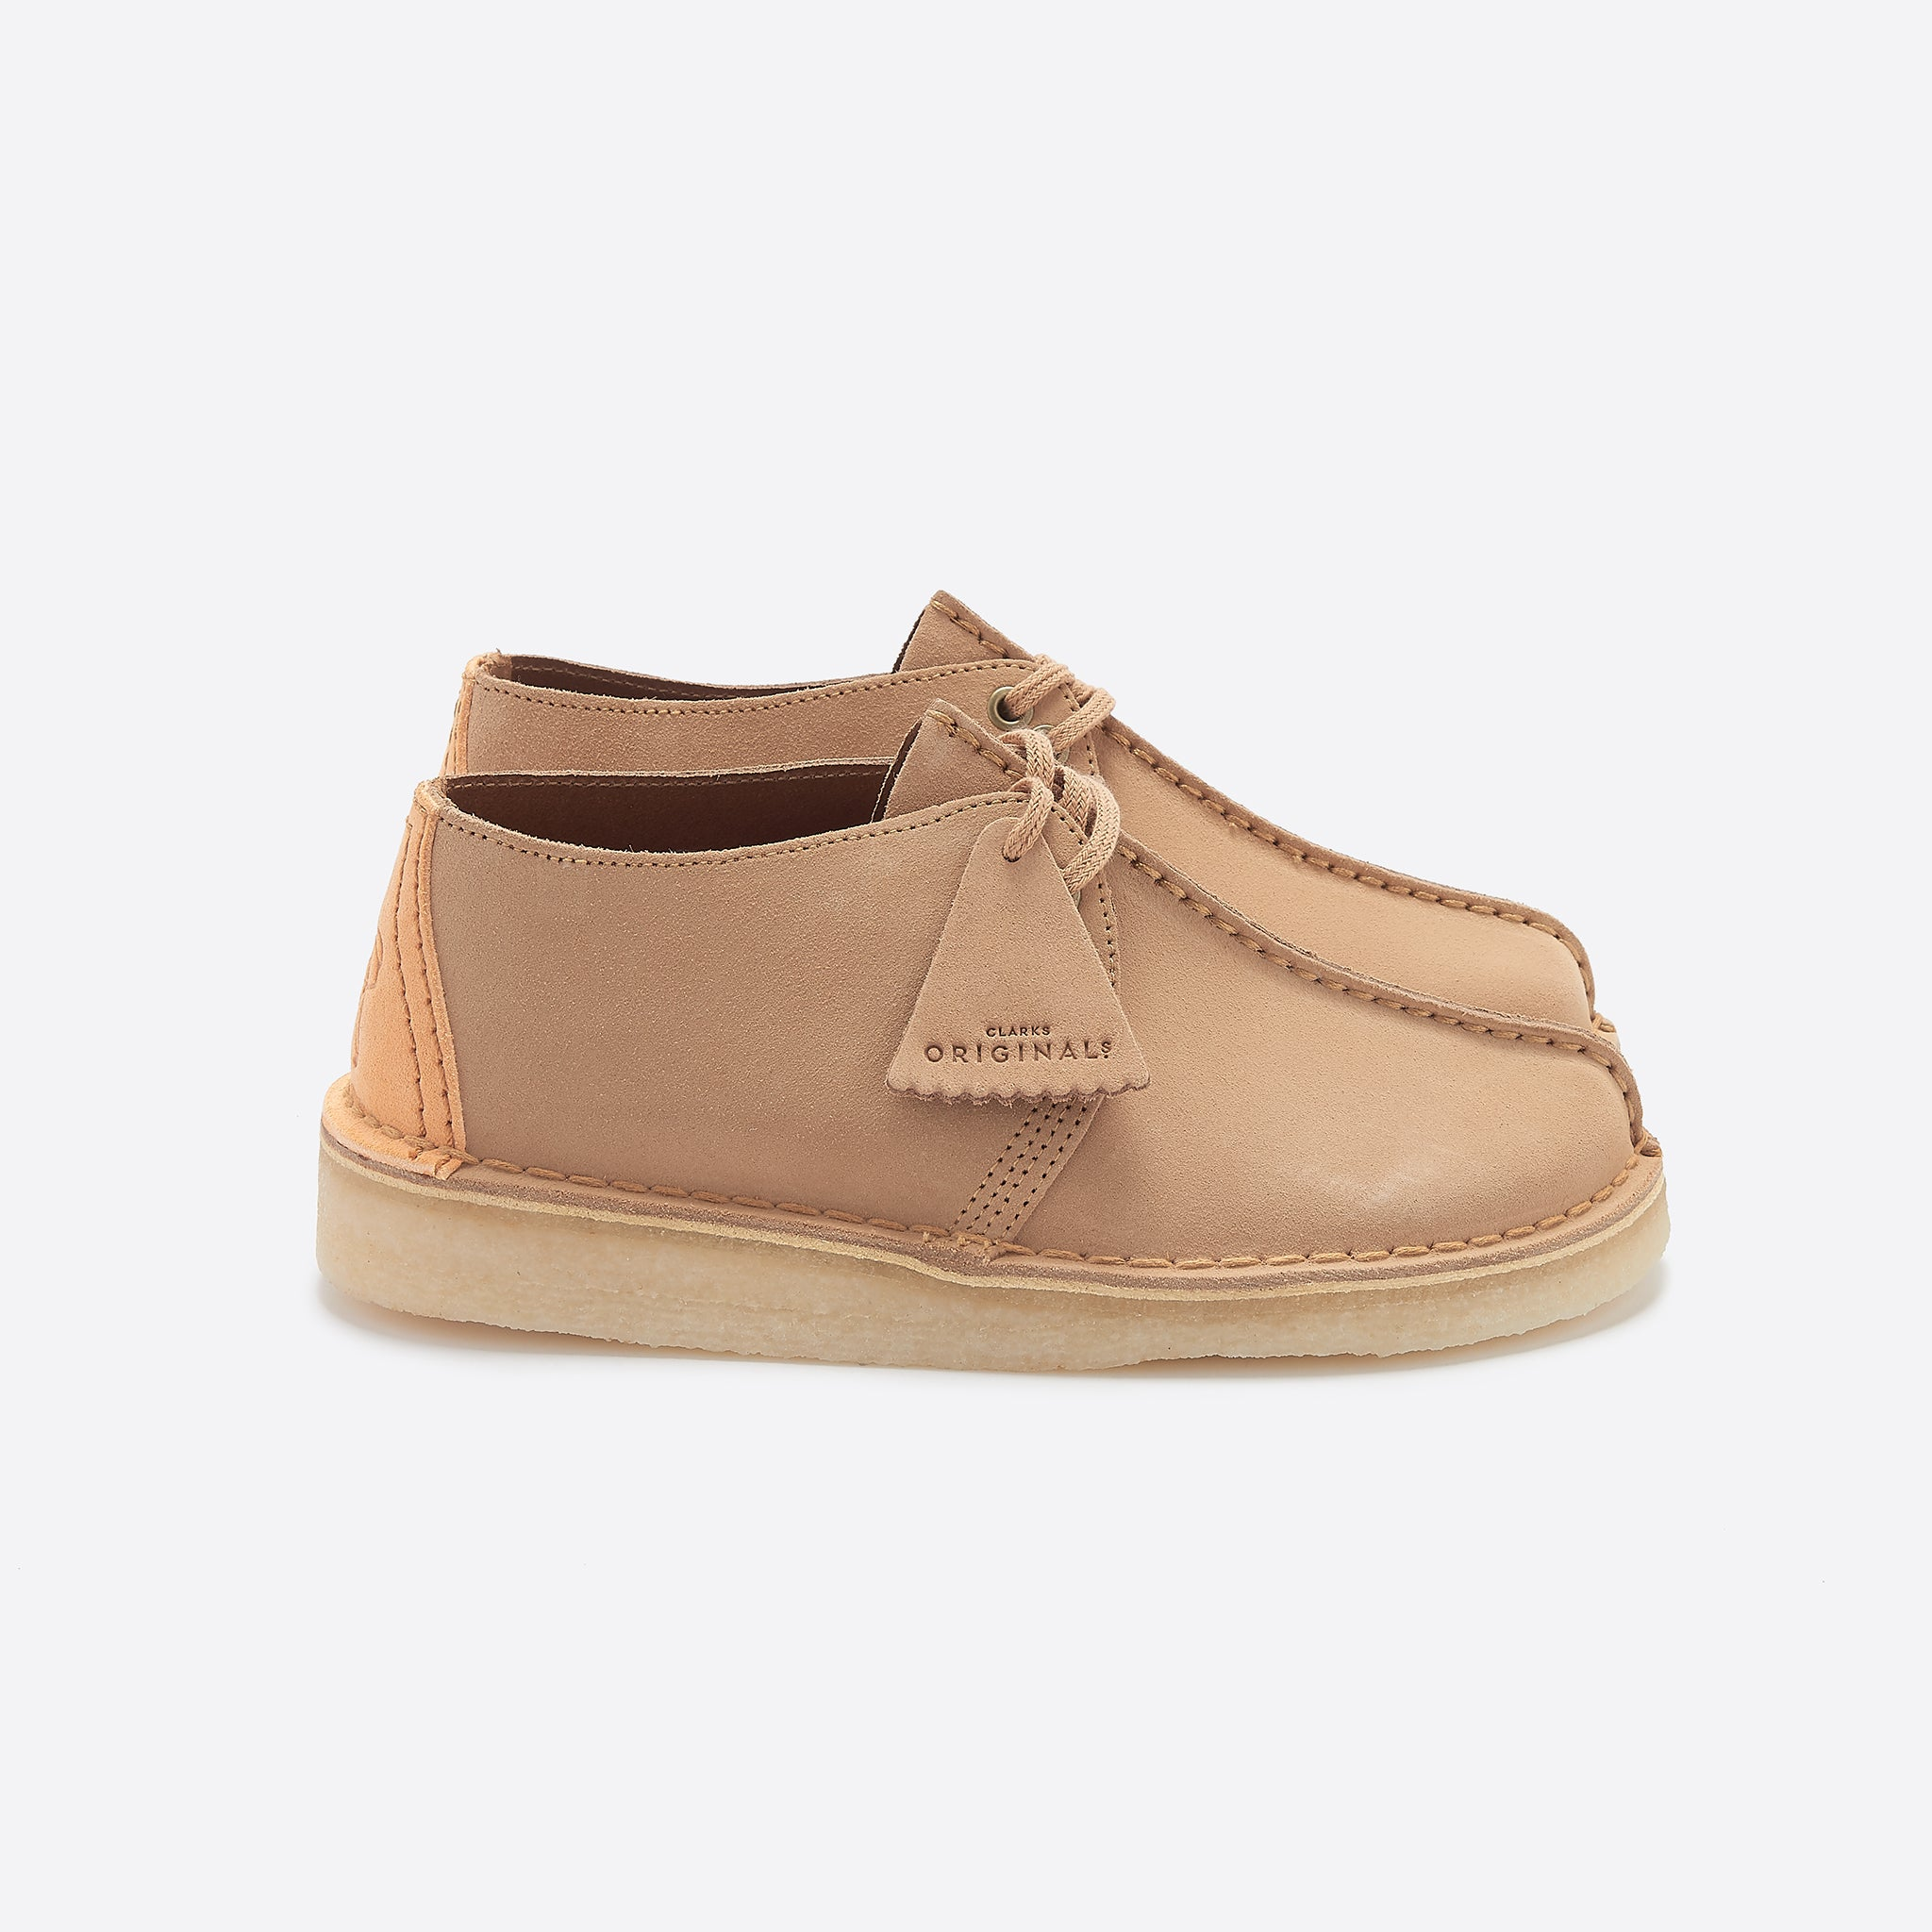 Clarks Originals Desert Trek in Light Tan